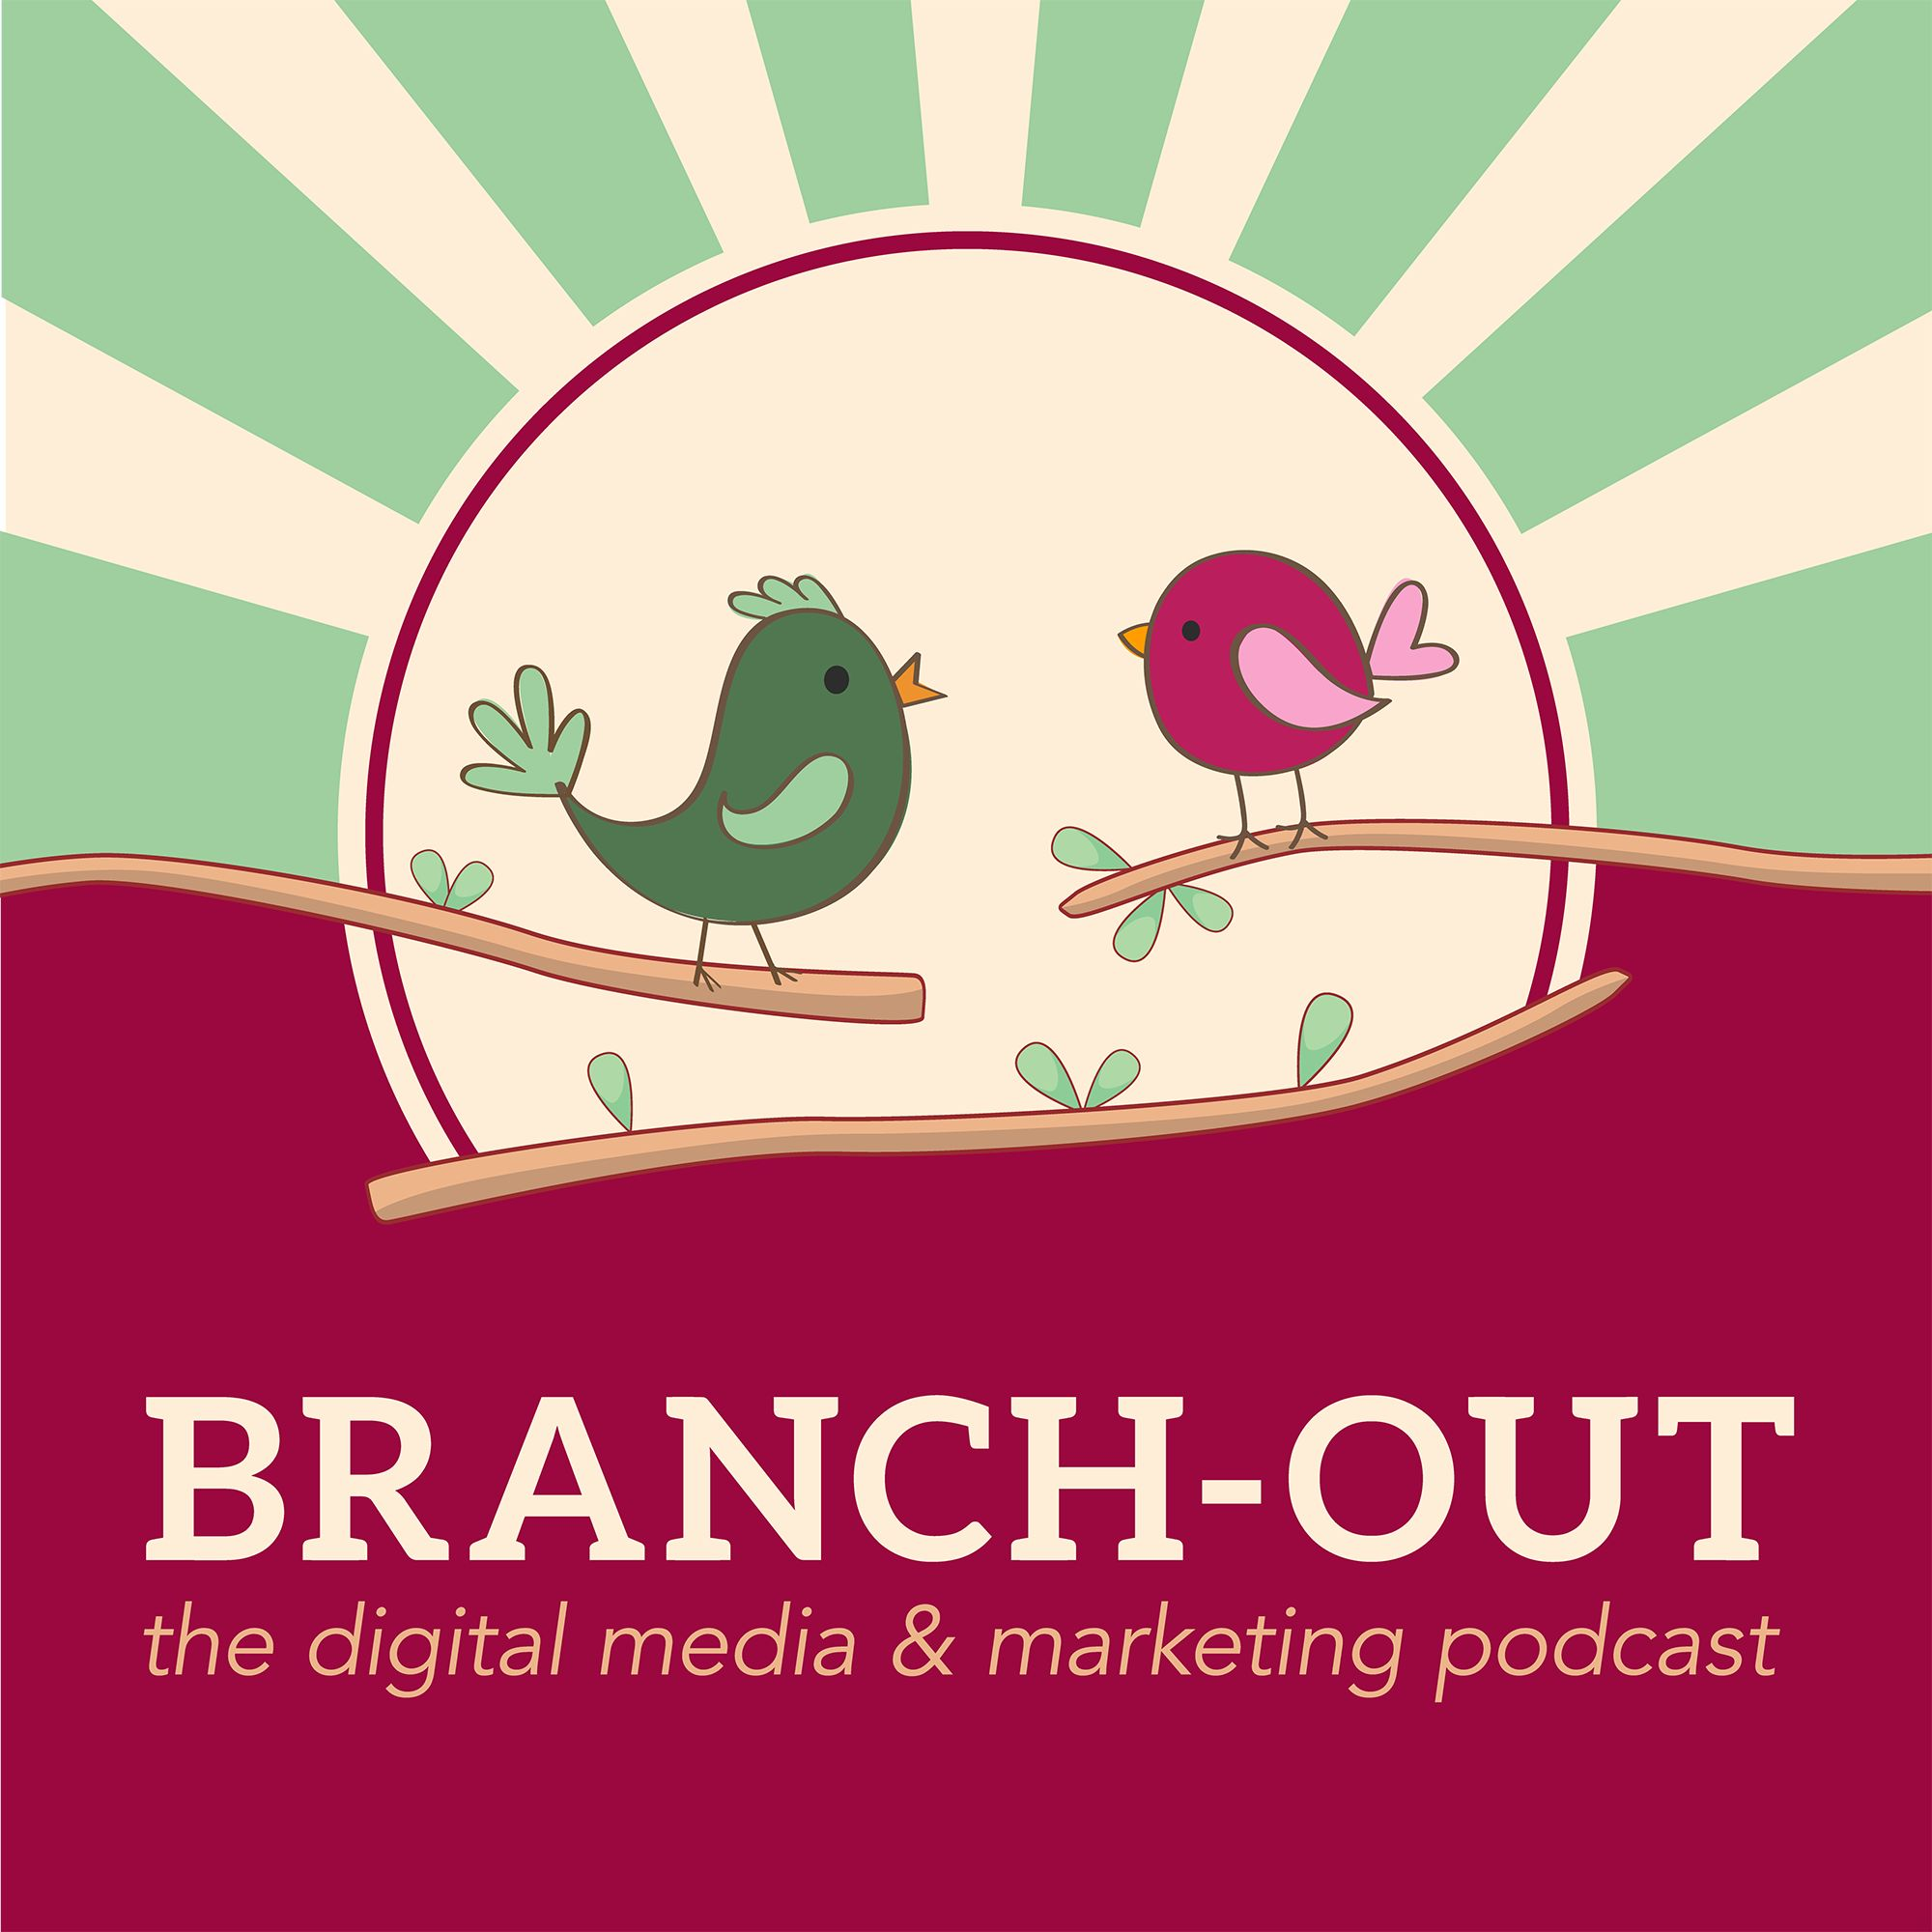 Branch-Out: THE Digital Media & Marketing Podcast